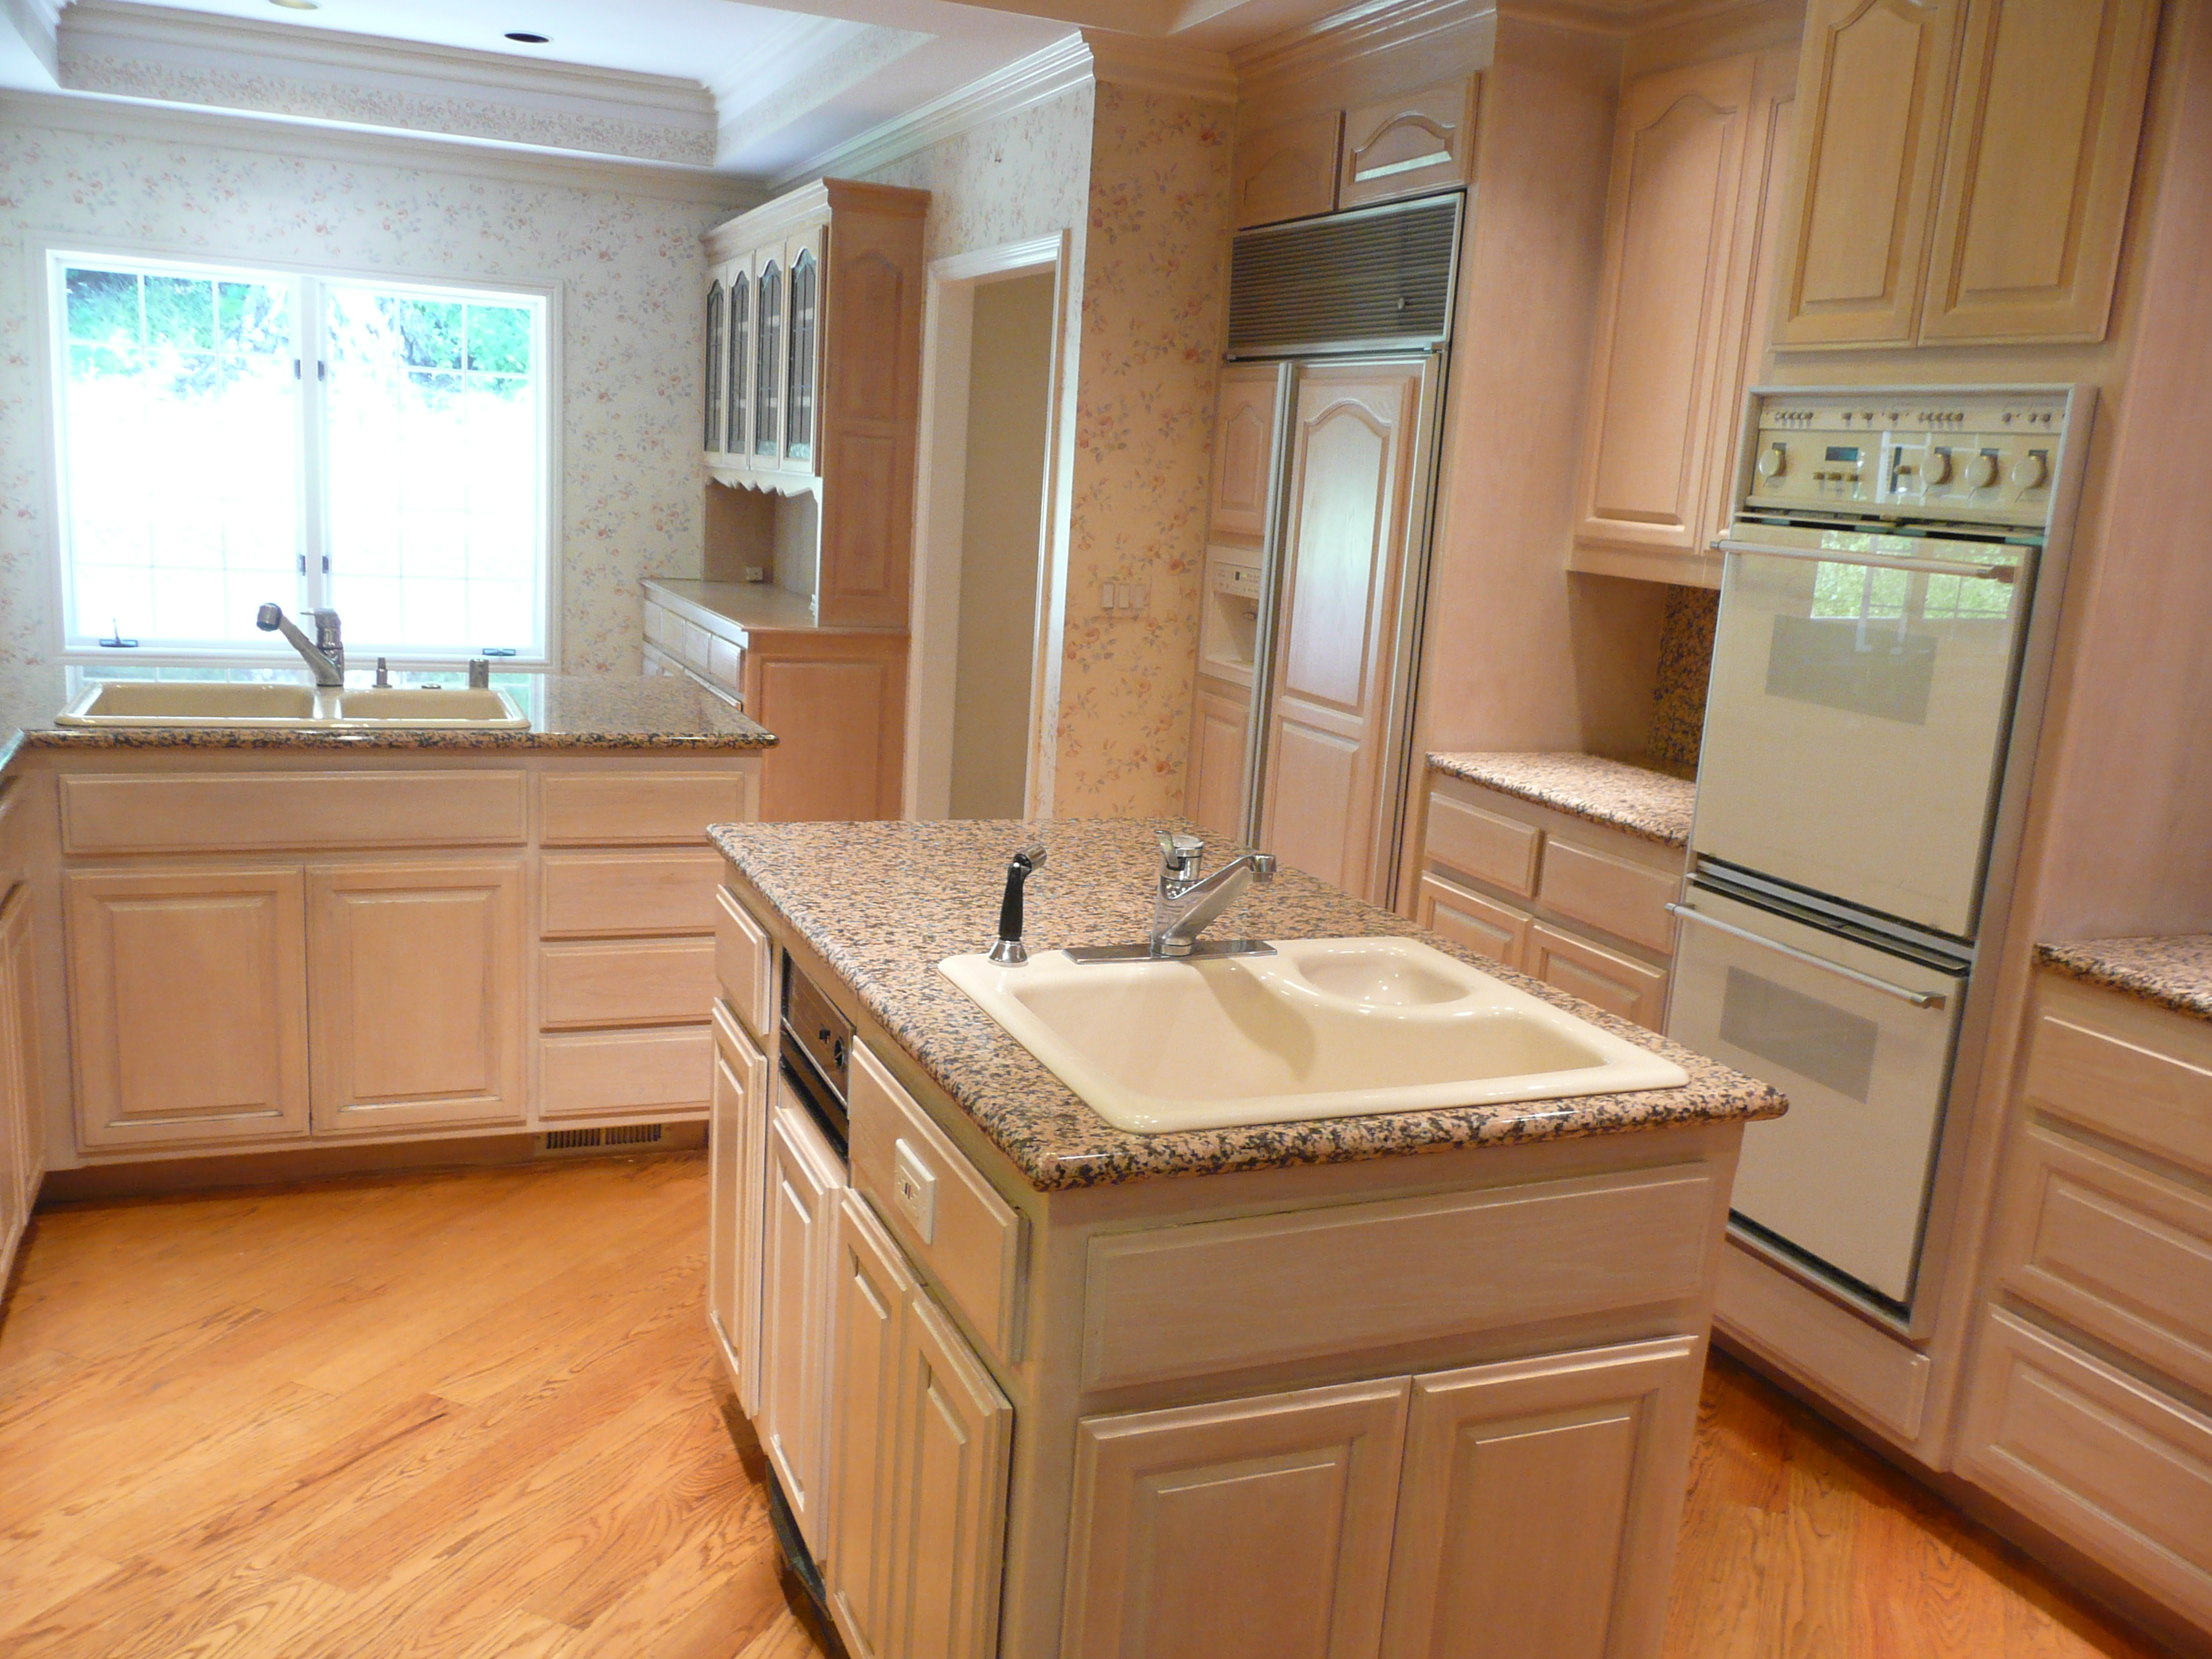 feng shui kitchen feng shui kitchen colors home buyers and yang energy part 2 wood floor kitchen Wood kitchen Not Feng Shui kitchen